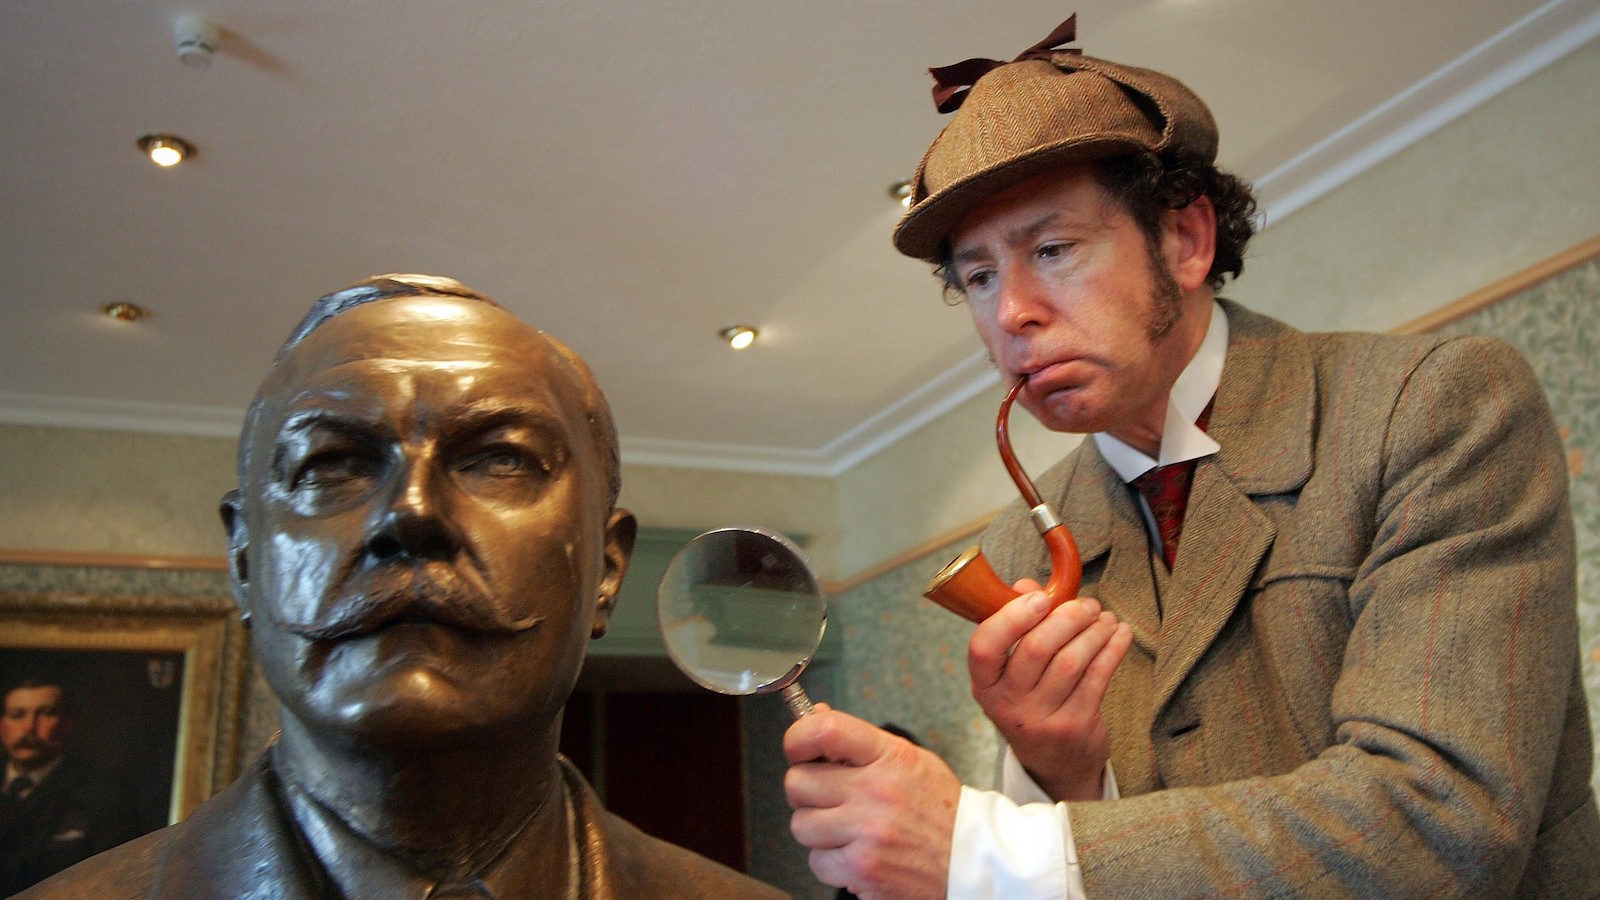 "Sherlock Holmes alias Philip Porter of the Sherlock Holmes Society of London takes a look at a statue of Arthur Conan Doyle at the Sherlock Holmes Museum in Lucens on Friday, June 17, 2005. The Sherlock Holmes Society of London is on a pilgrimage to Switzerland from June 15 to June 23. In accordance with tradition, the journey will follow the footsteps of Holmes in the book ""The Final Problem"", with a diversion in the Swiss Valais region. The members of the Society travel in late Victorian costumes. (AP Photo/Keystone, Photopress, Alessandro Della Bella)"